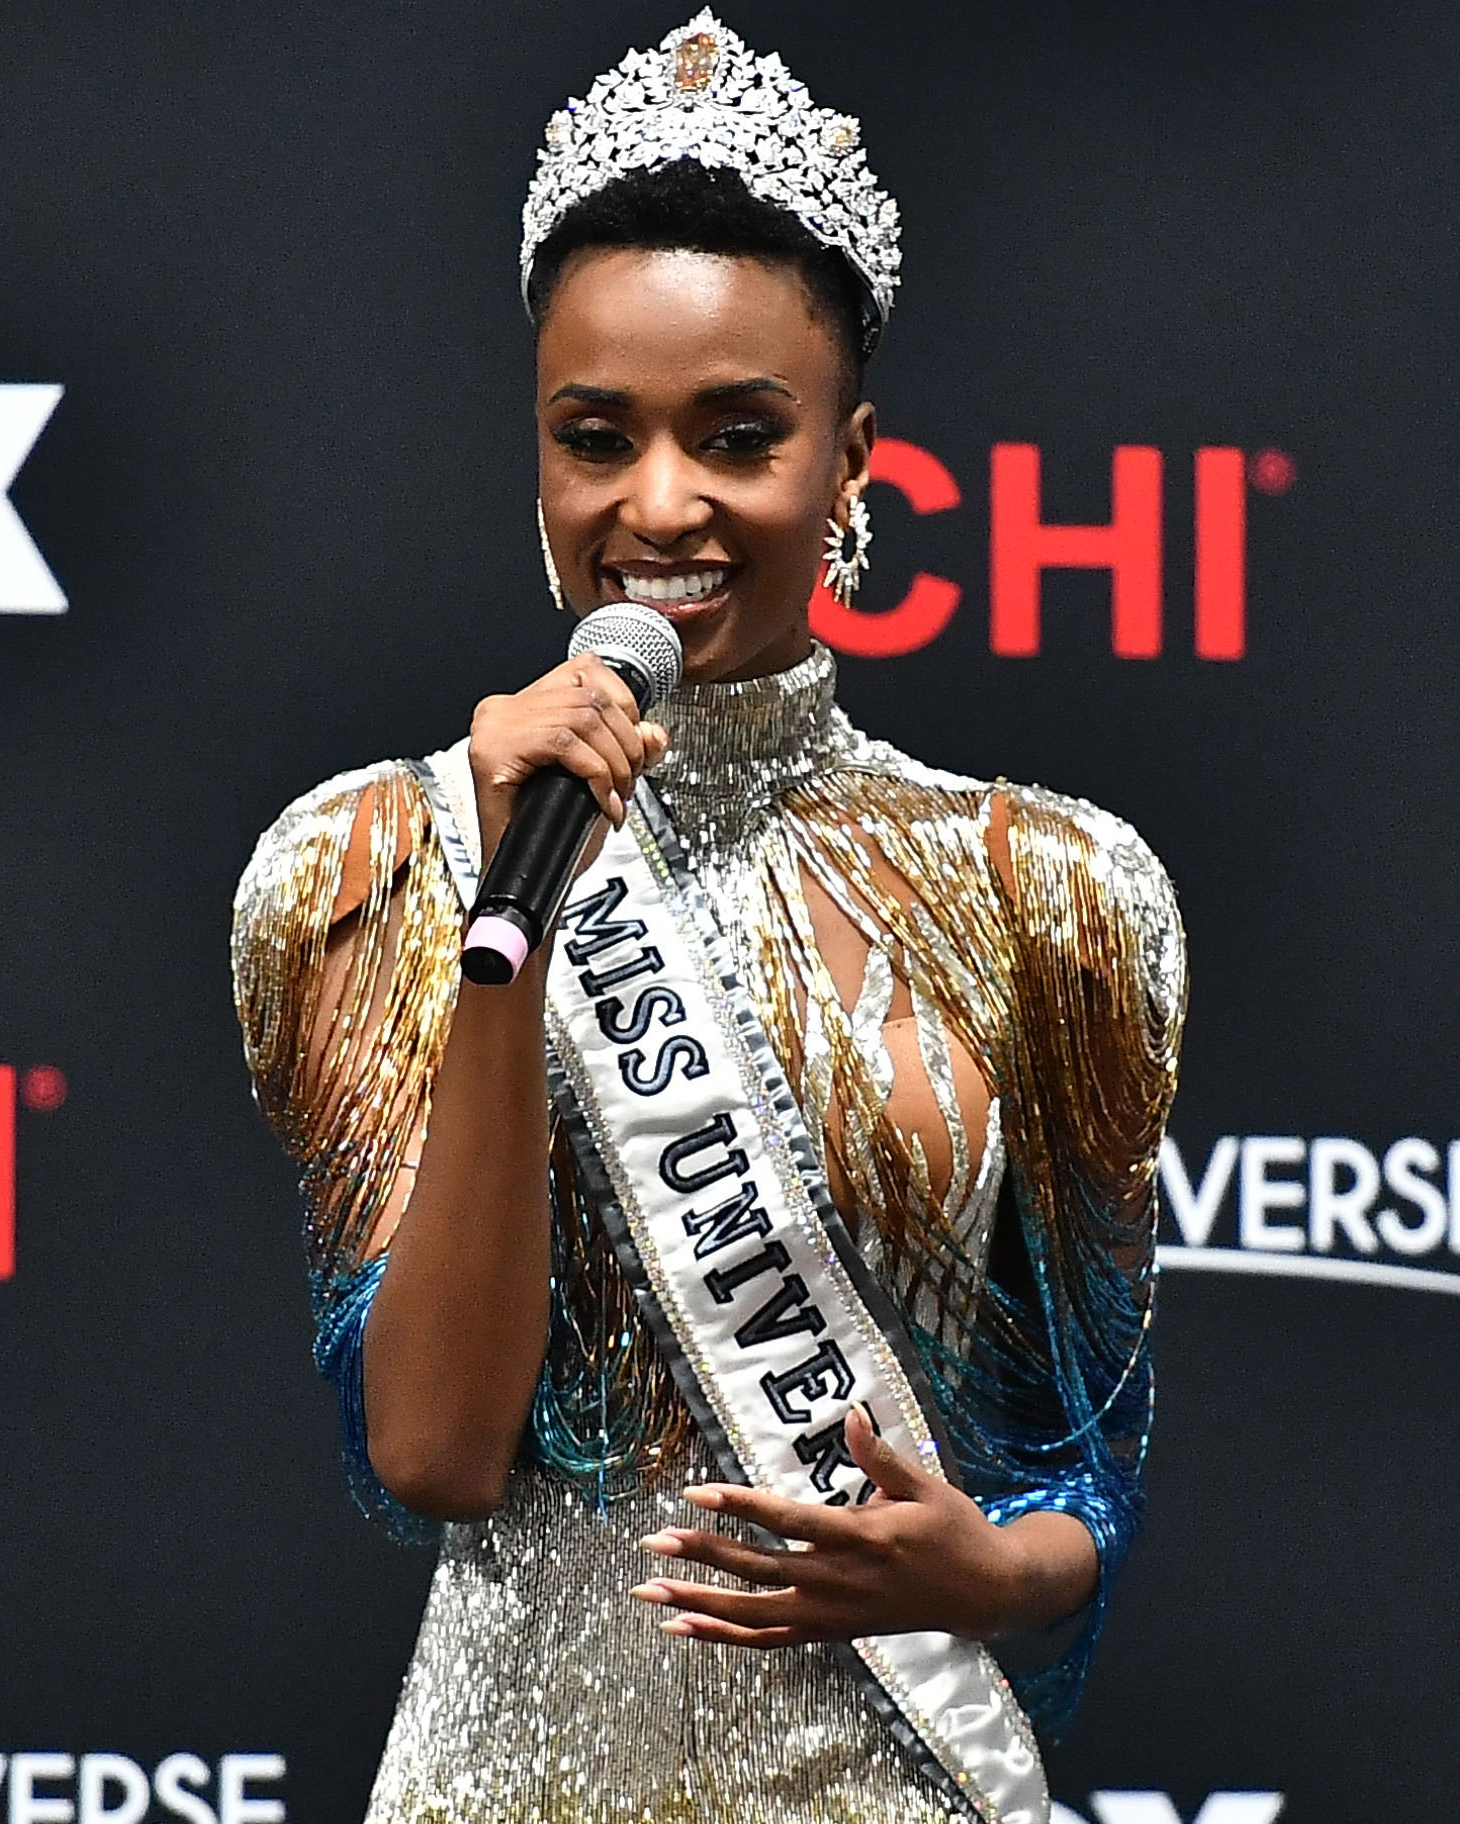 ATLANTA, GEORGIA - DECEMBER 08: (EDITORIAL USE ONLY) Miss Universe 2019 Zozibini Tunzi, of South Africa, speaks at a press conference following the 2019 Miss Universe Pageant at Tyler Perry Studios on December 08, 2019 in Atlanta, Georgia.   Paras Griffin/Getty Images/AFP